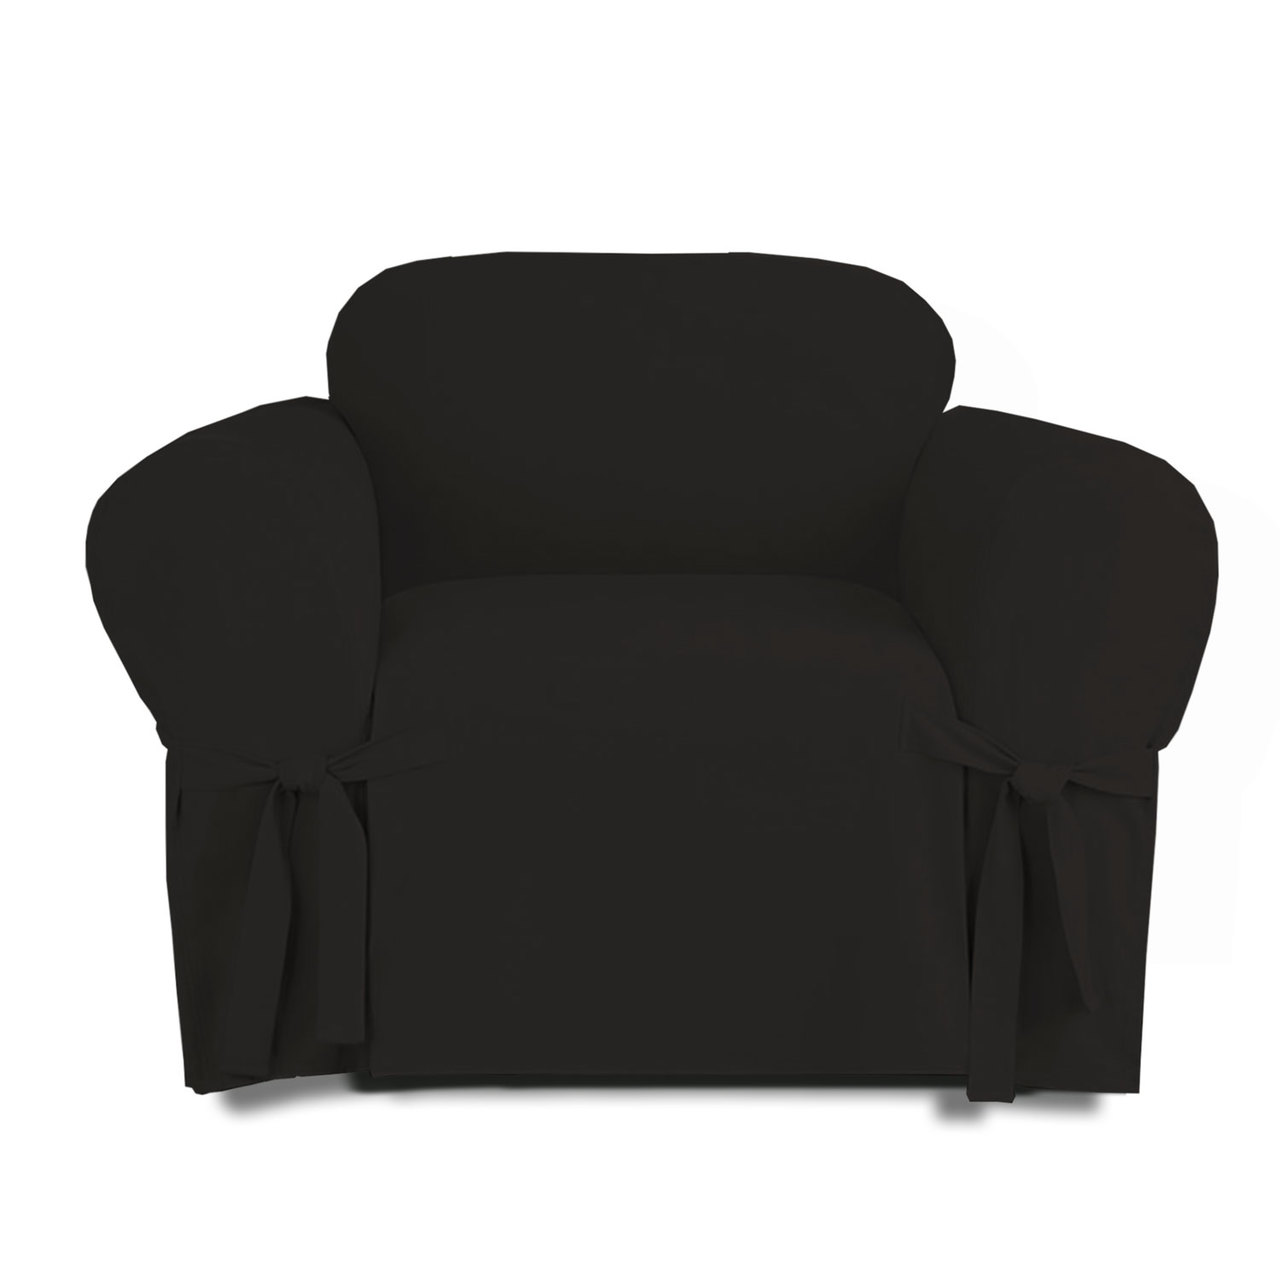 Linen Store Microsuede Furniture Slipcover (Chair, Black)